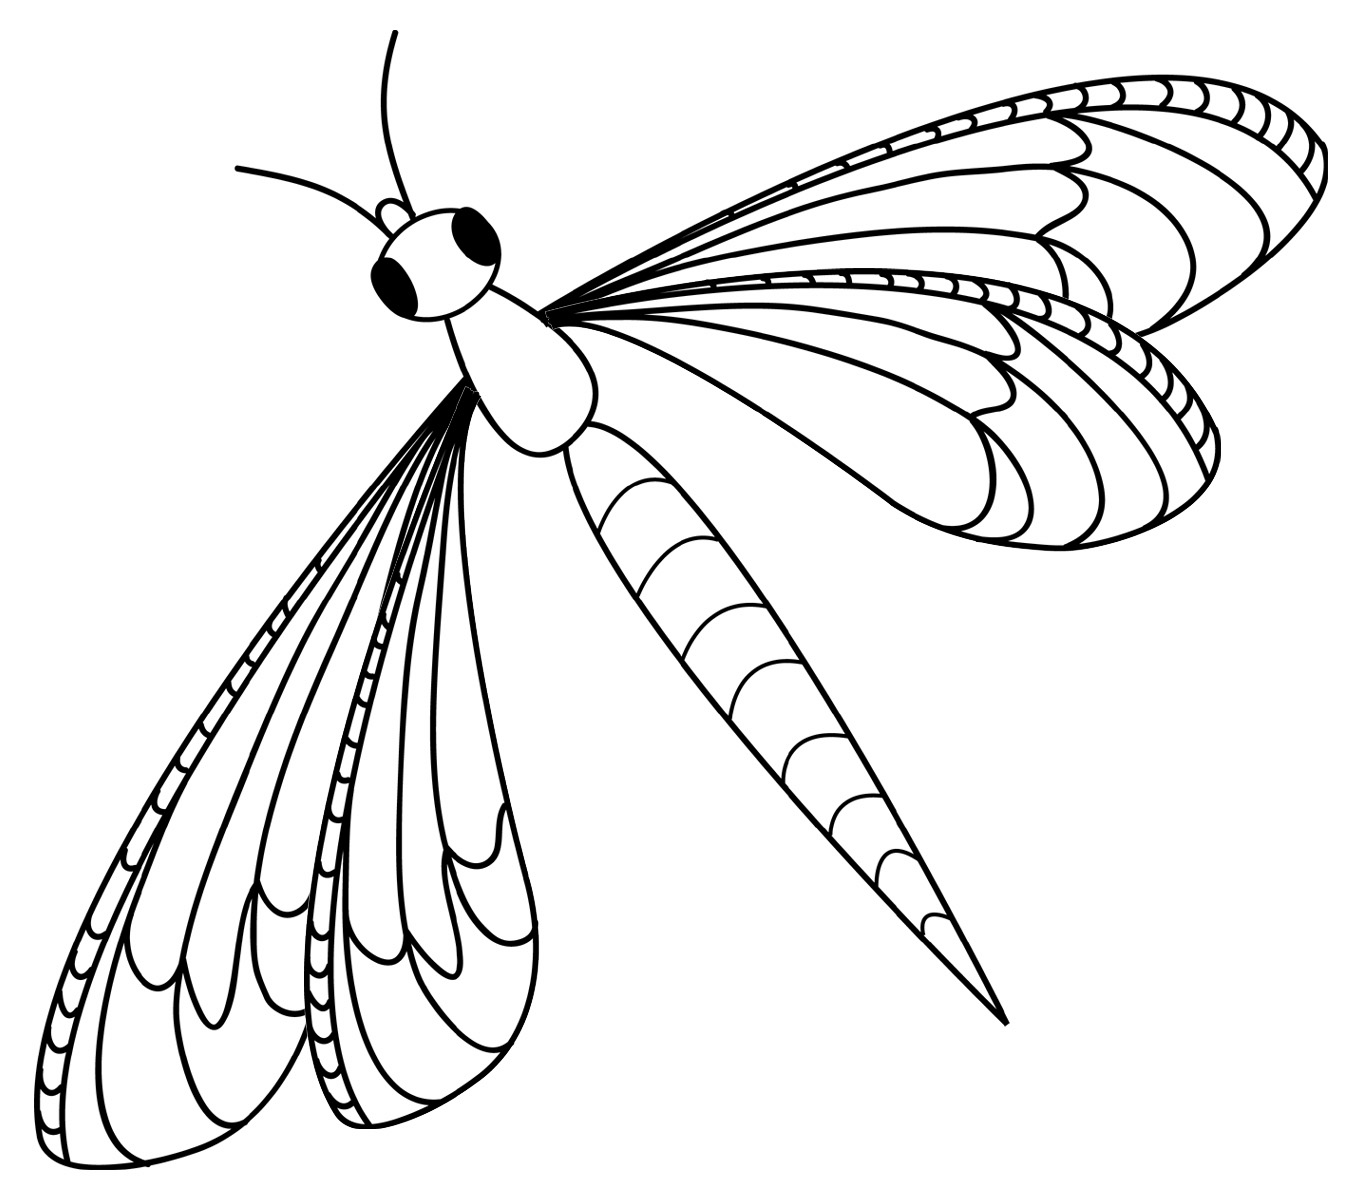 Clip Art Insects Dragonfly Grayscale | Coloringkids.co